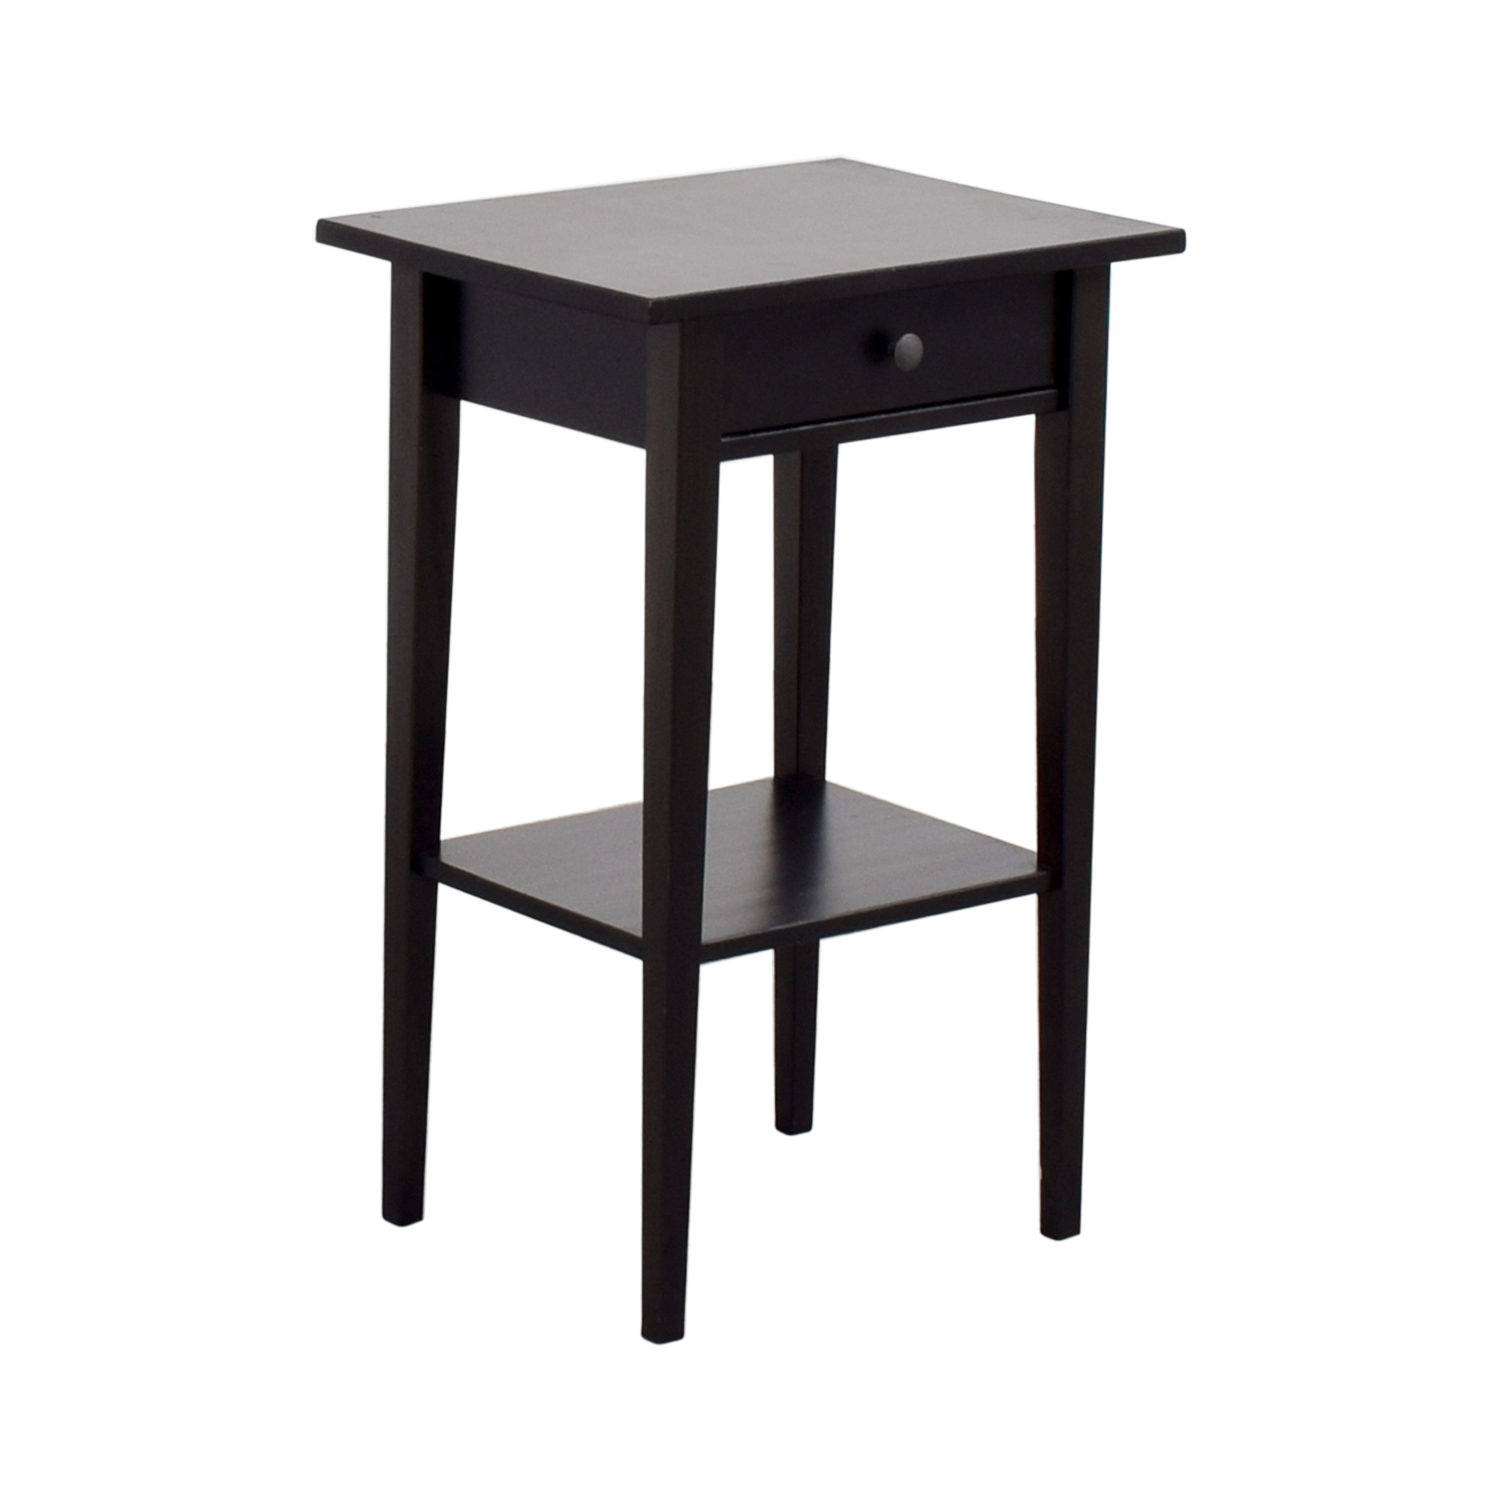 66 off ikea ikea brown single drawer nightstand tables. Black Bedroom Furniture Sets. Home Design Ideas